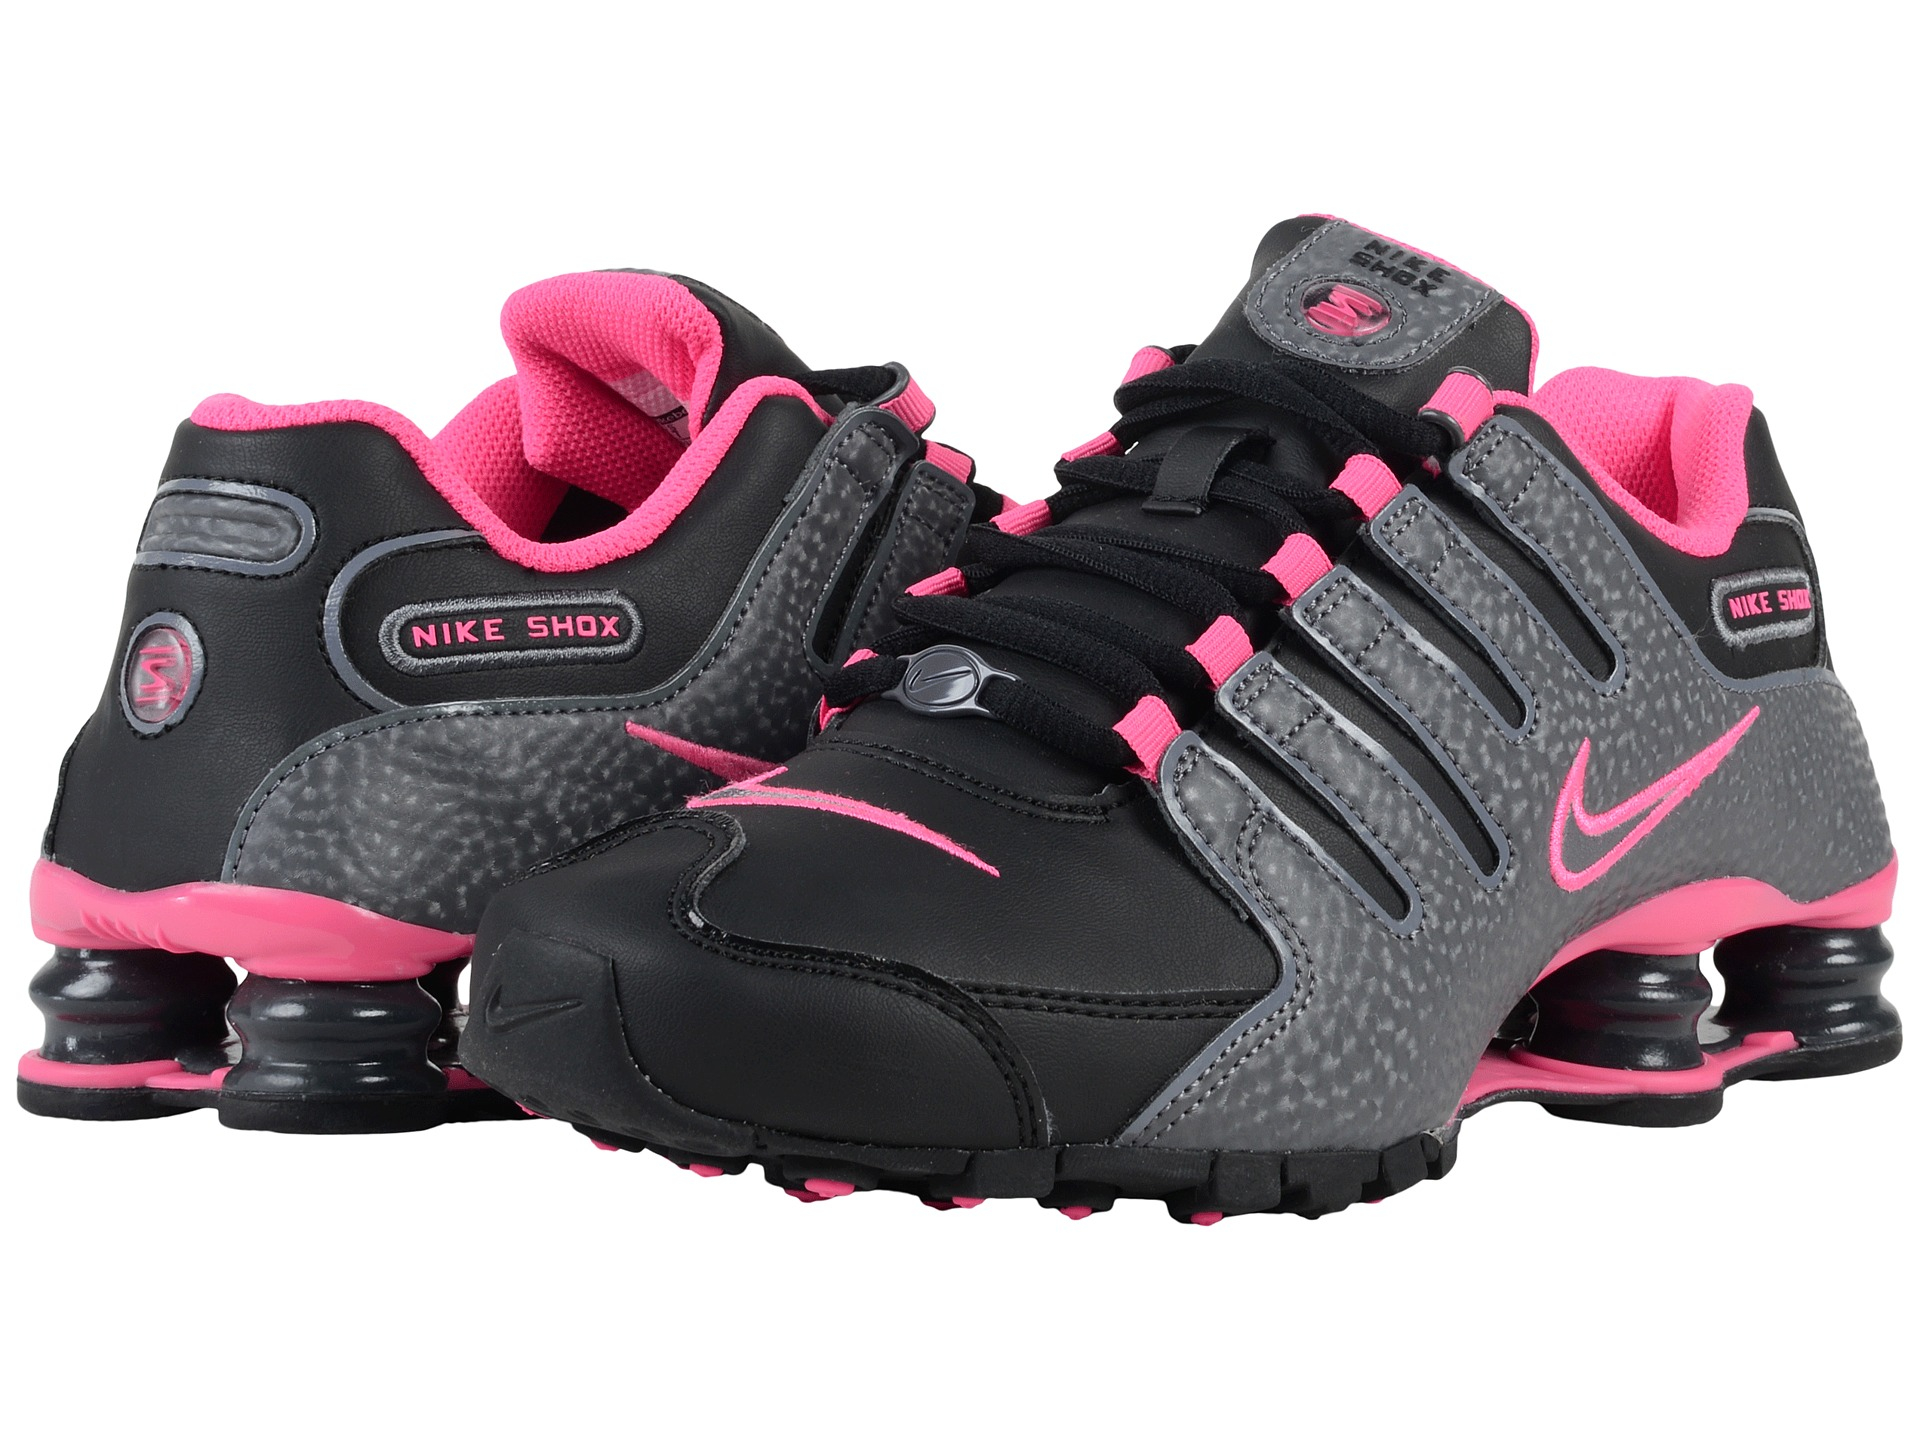 womens nike shox current pink white 1 nike blackdark grey shox nz black